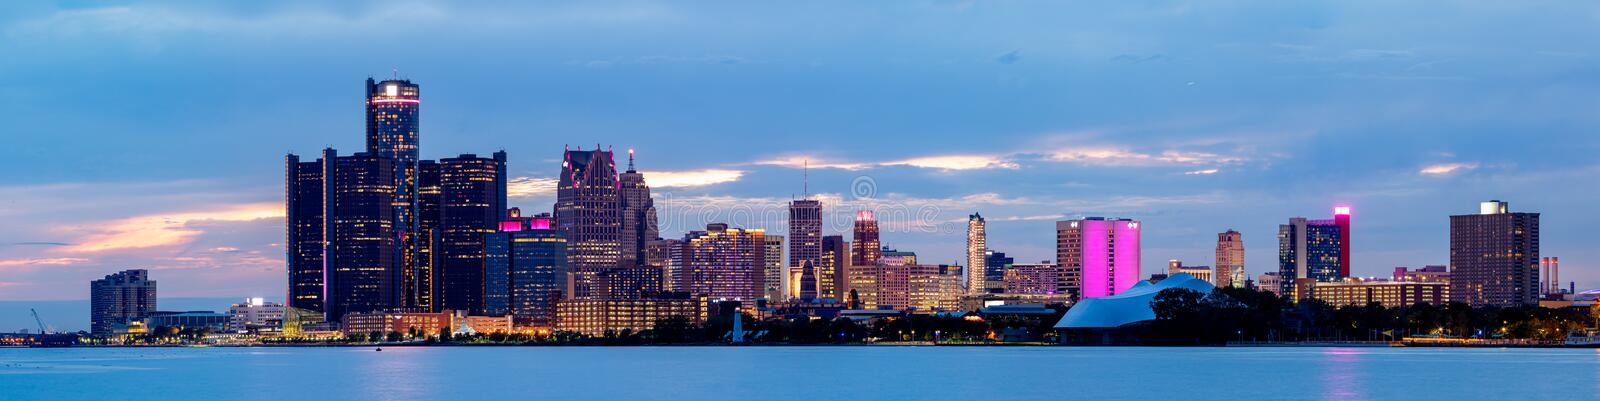 The City of Detroit royalty free stock photos